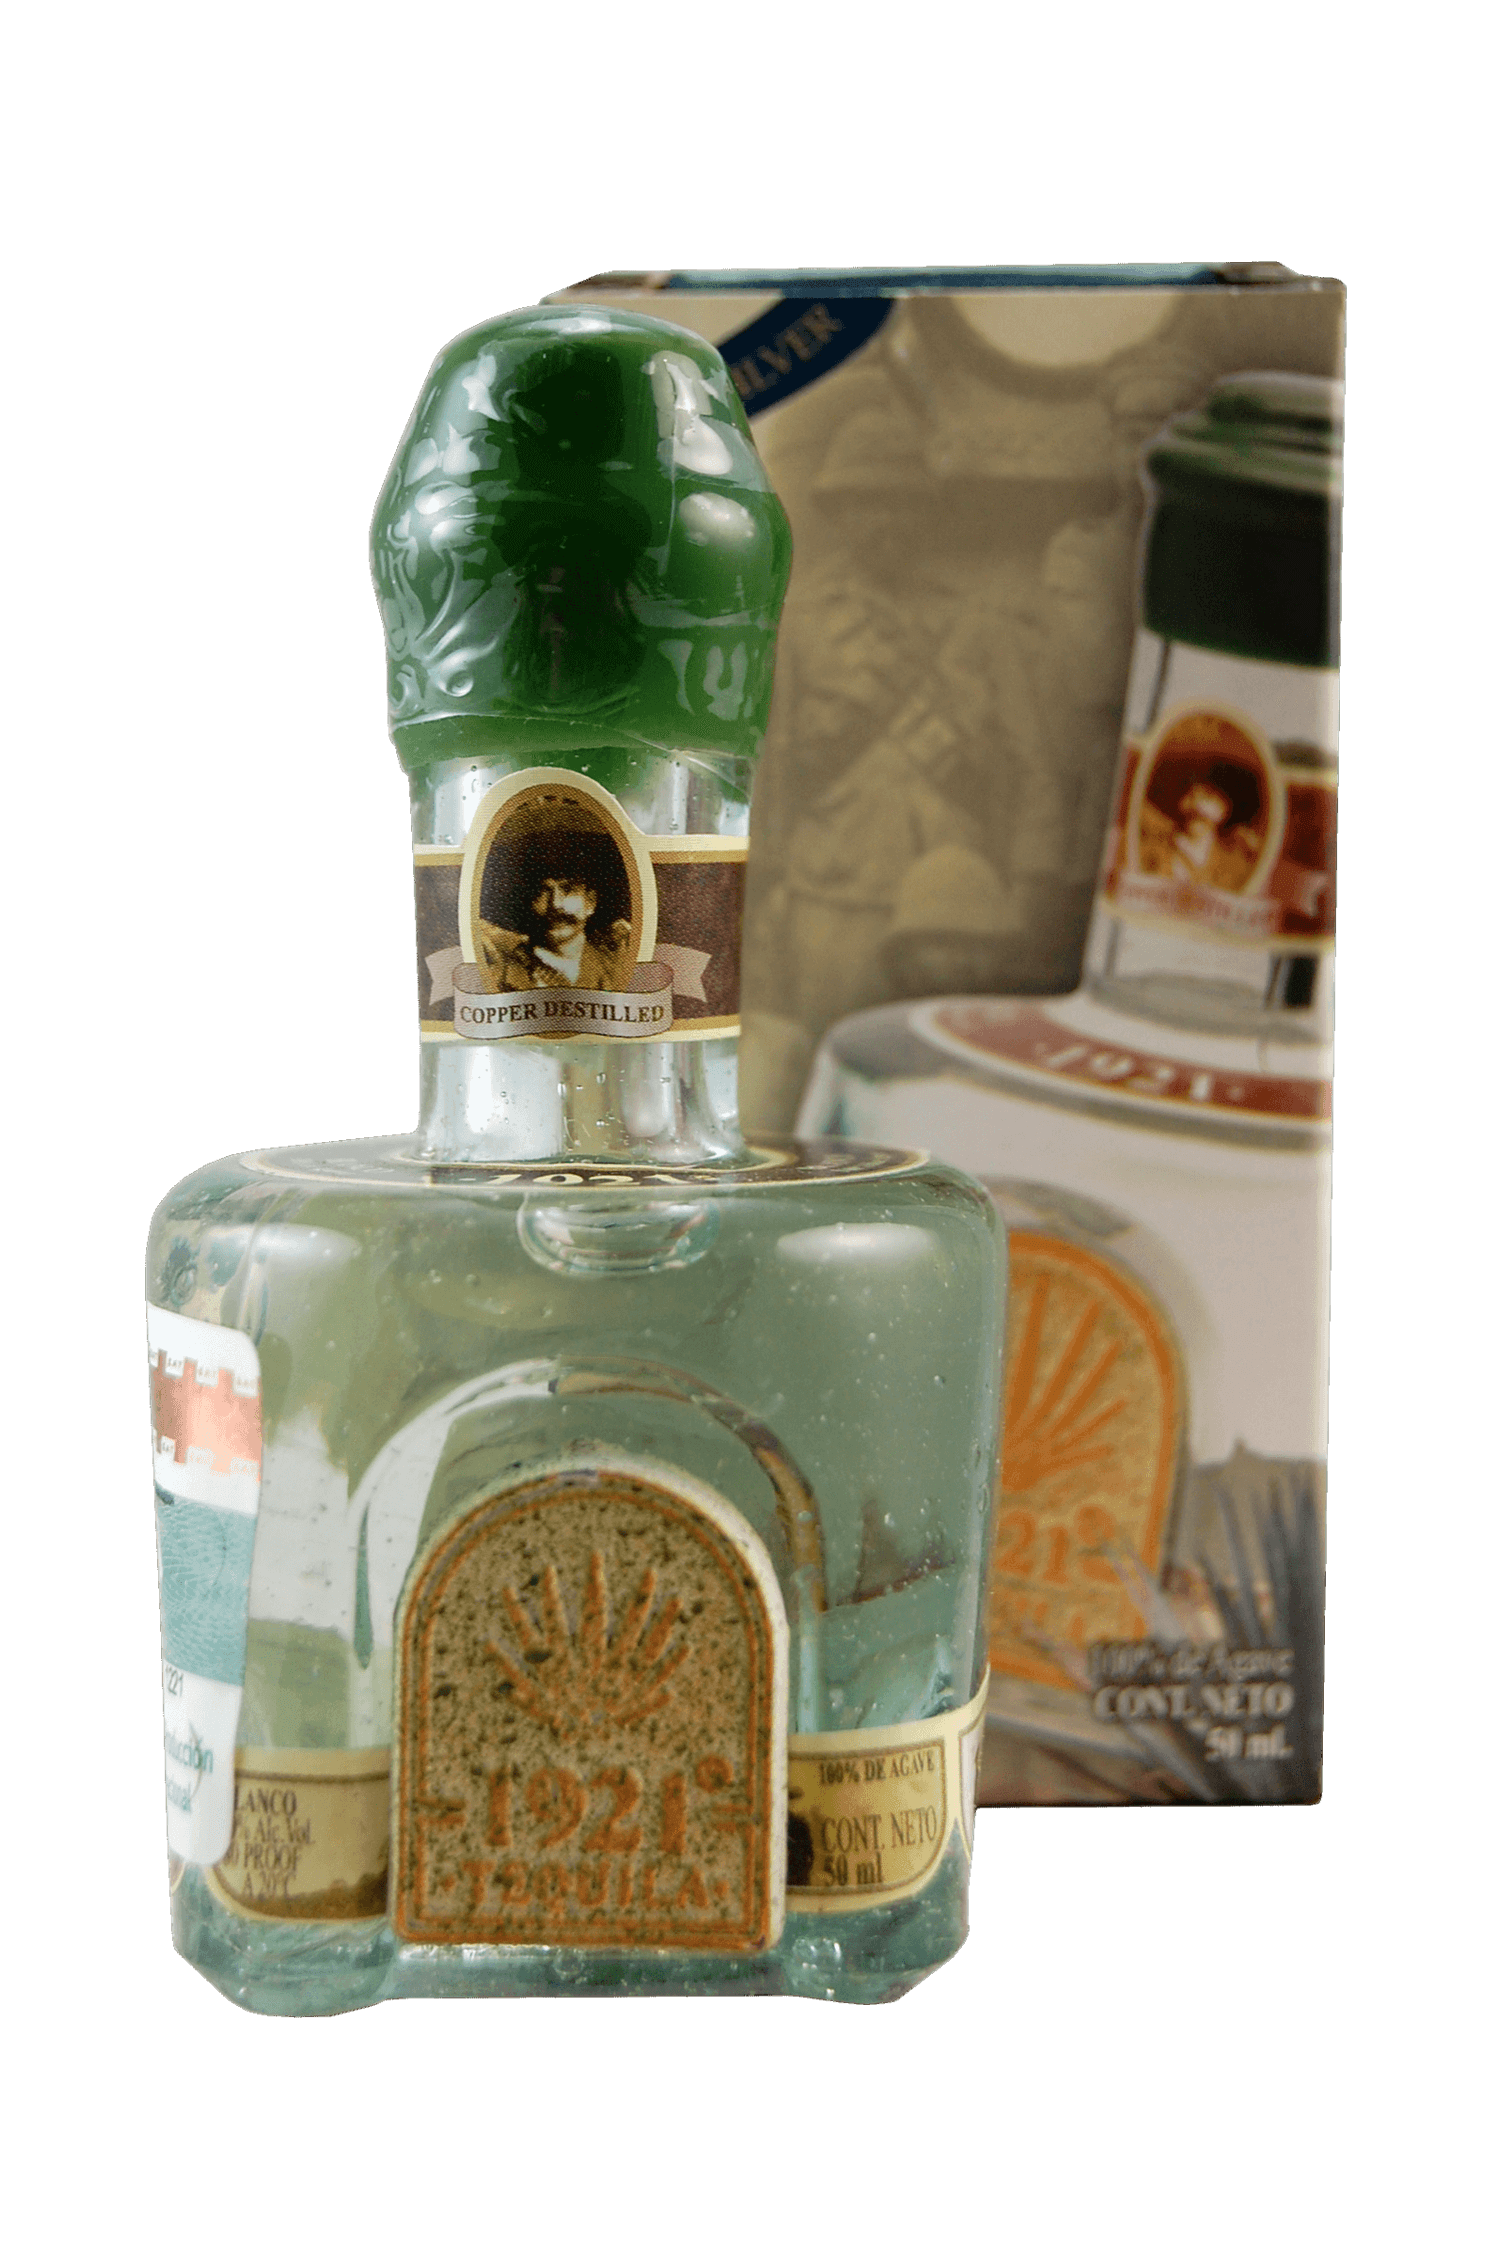 Blanco Tequila 1921